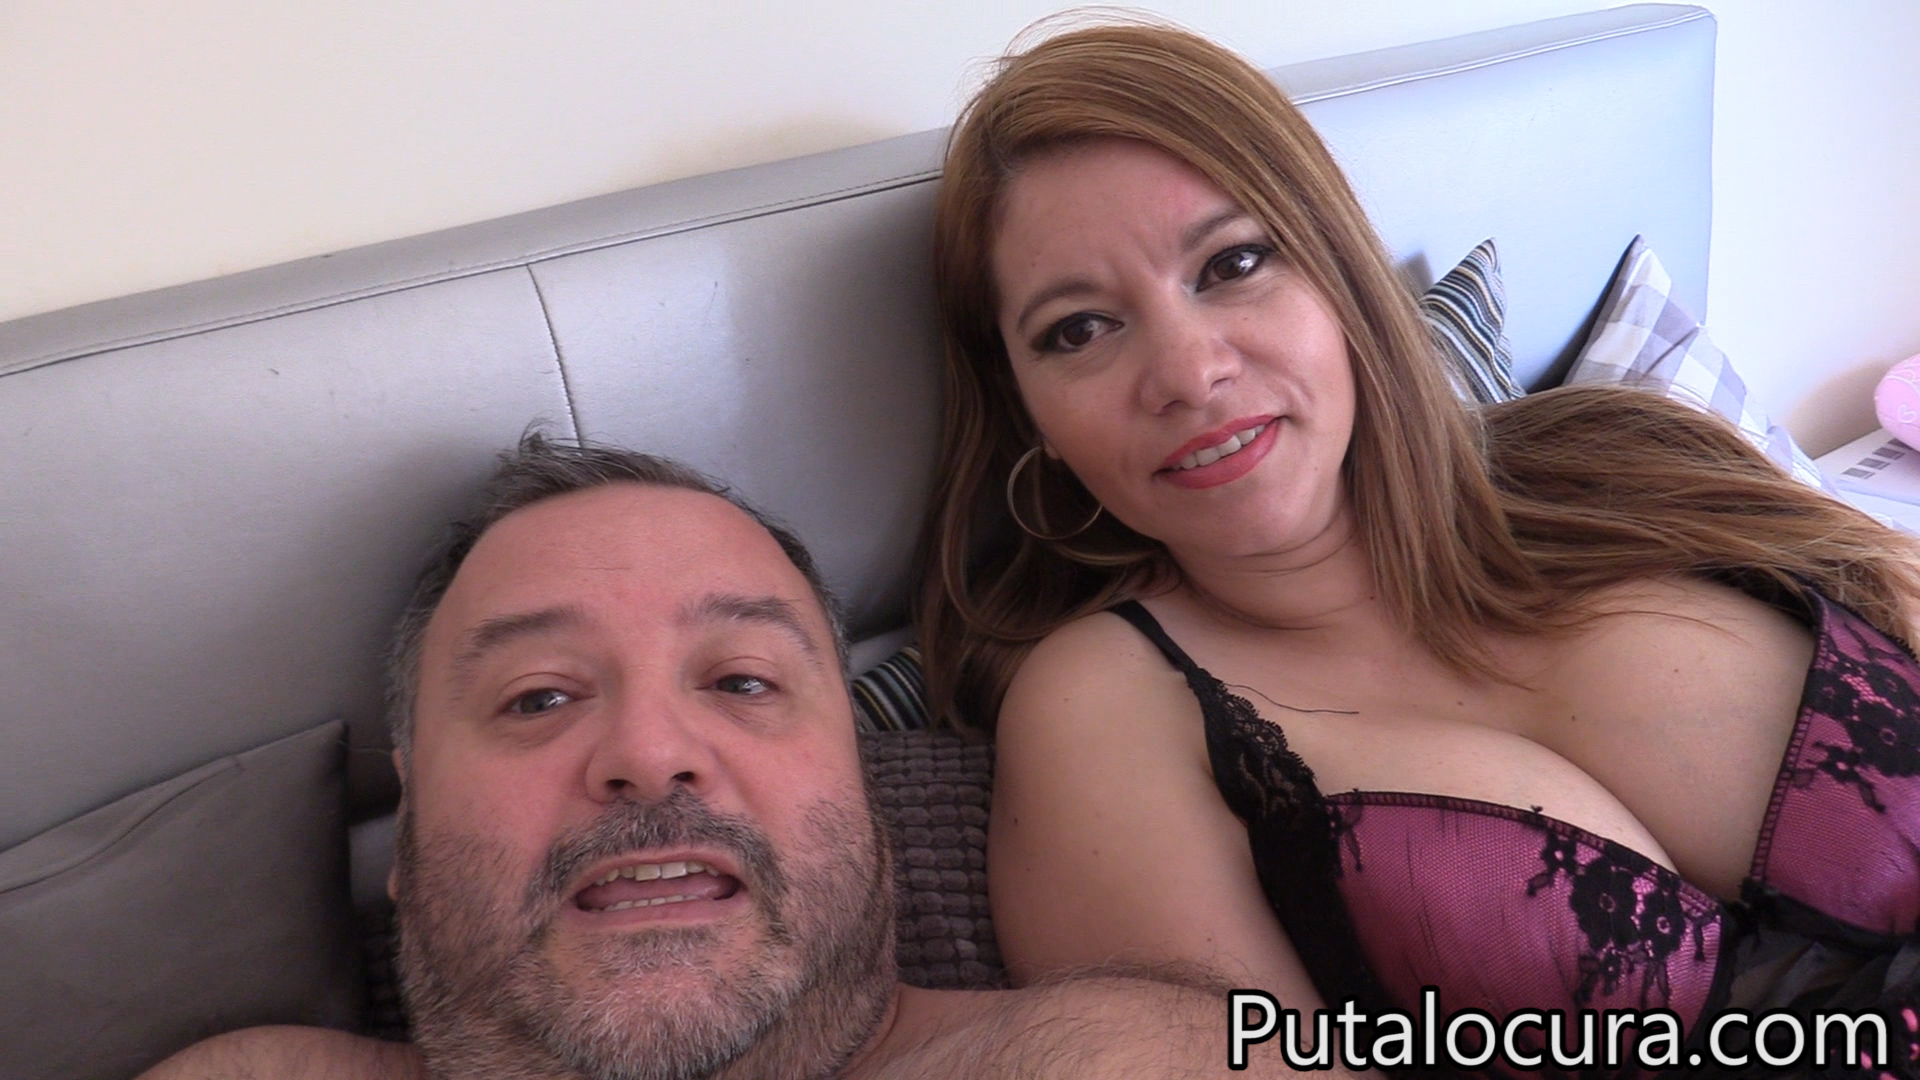 Aupa Atletic Video Porno showing xxx images for torbe girls fucking xxx | www.fuckpix